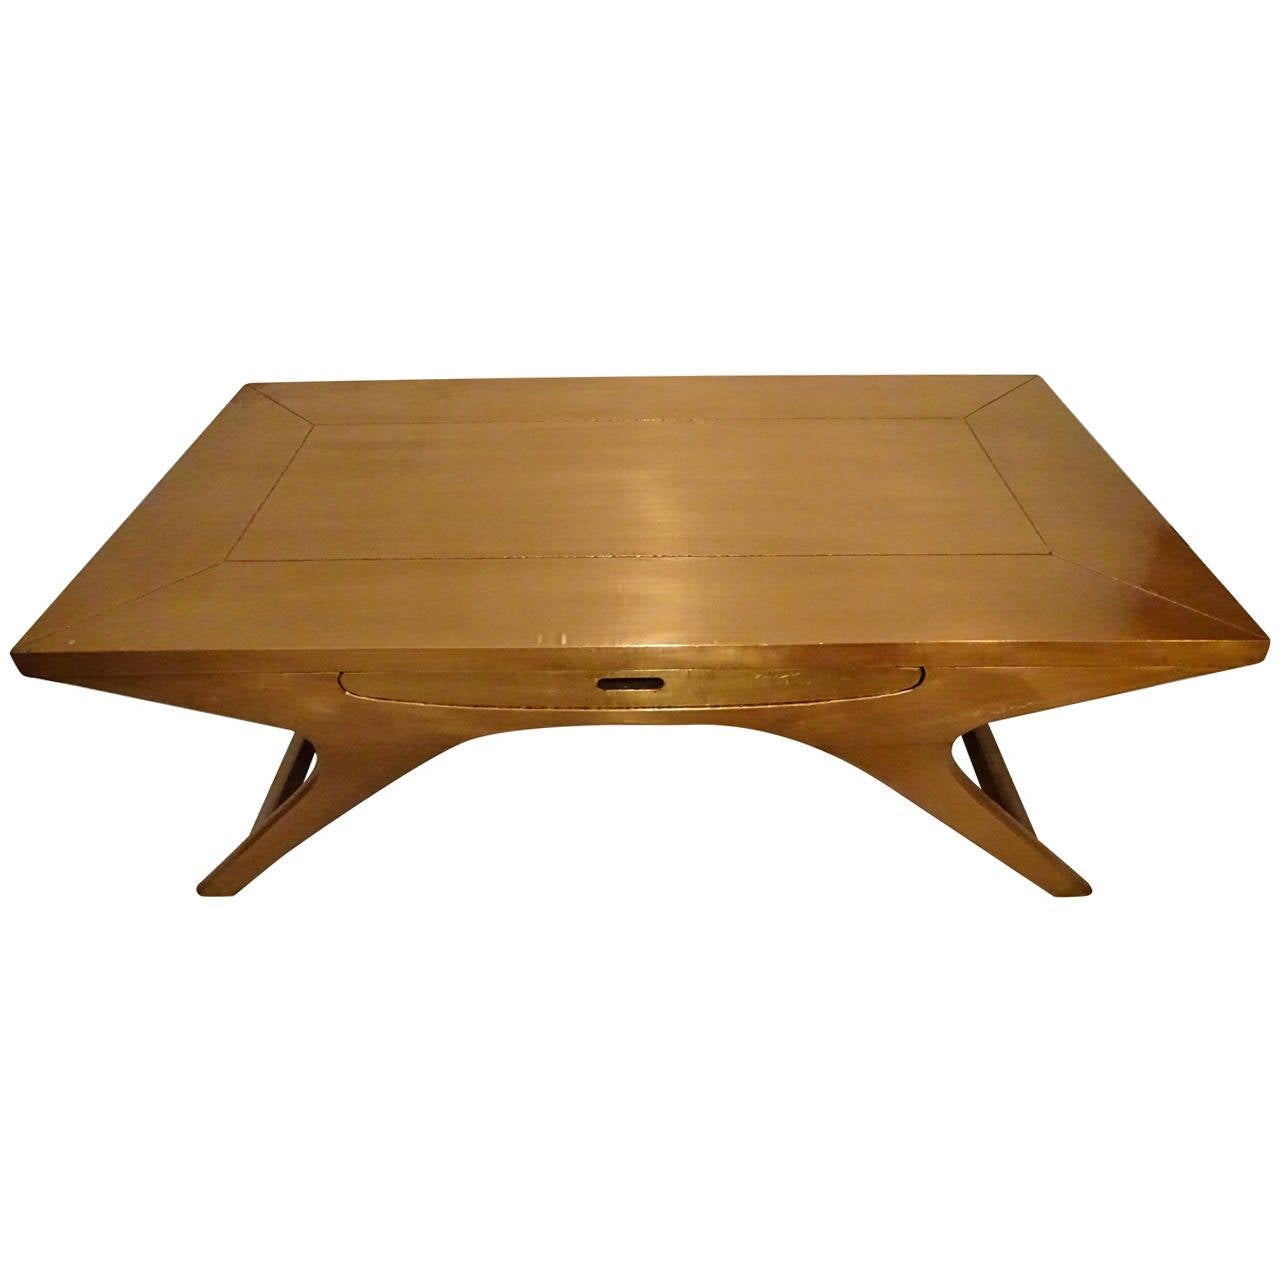 Modern Copper Clad Coffee Table At 1stdibs